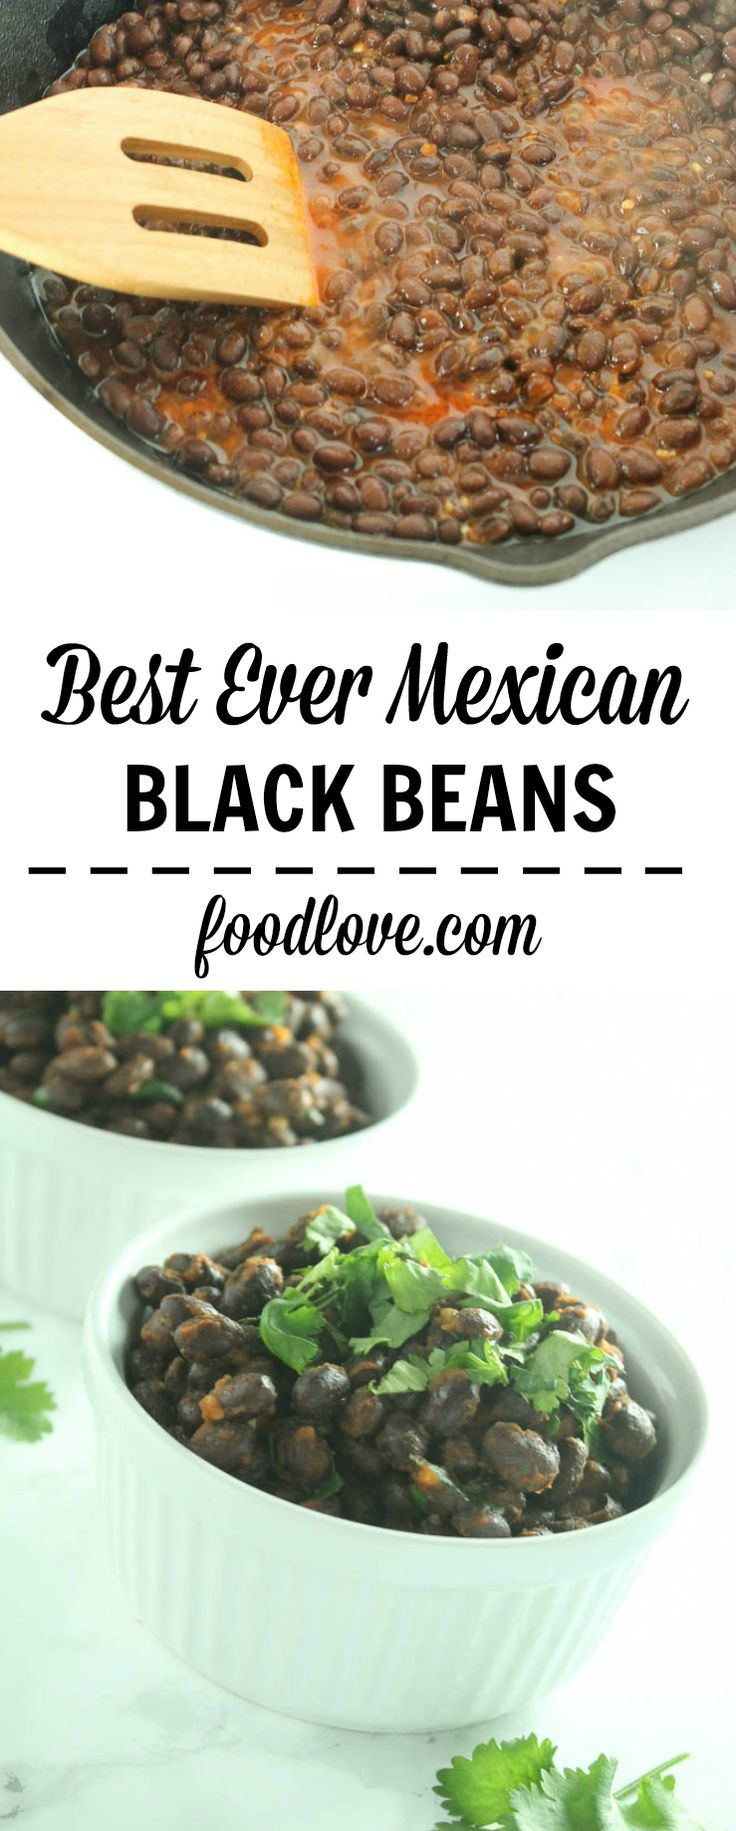 These really are the best ever Mexican black beans. Served as a side, on tacos or salads, or in burritos or enchiladas, they're delicious, quick, and easy!